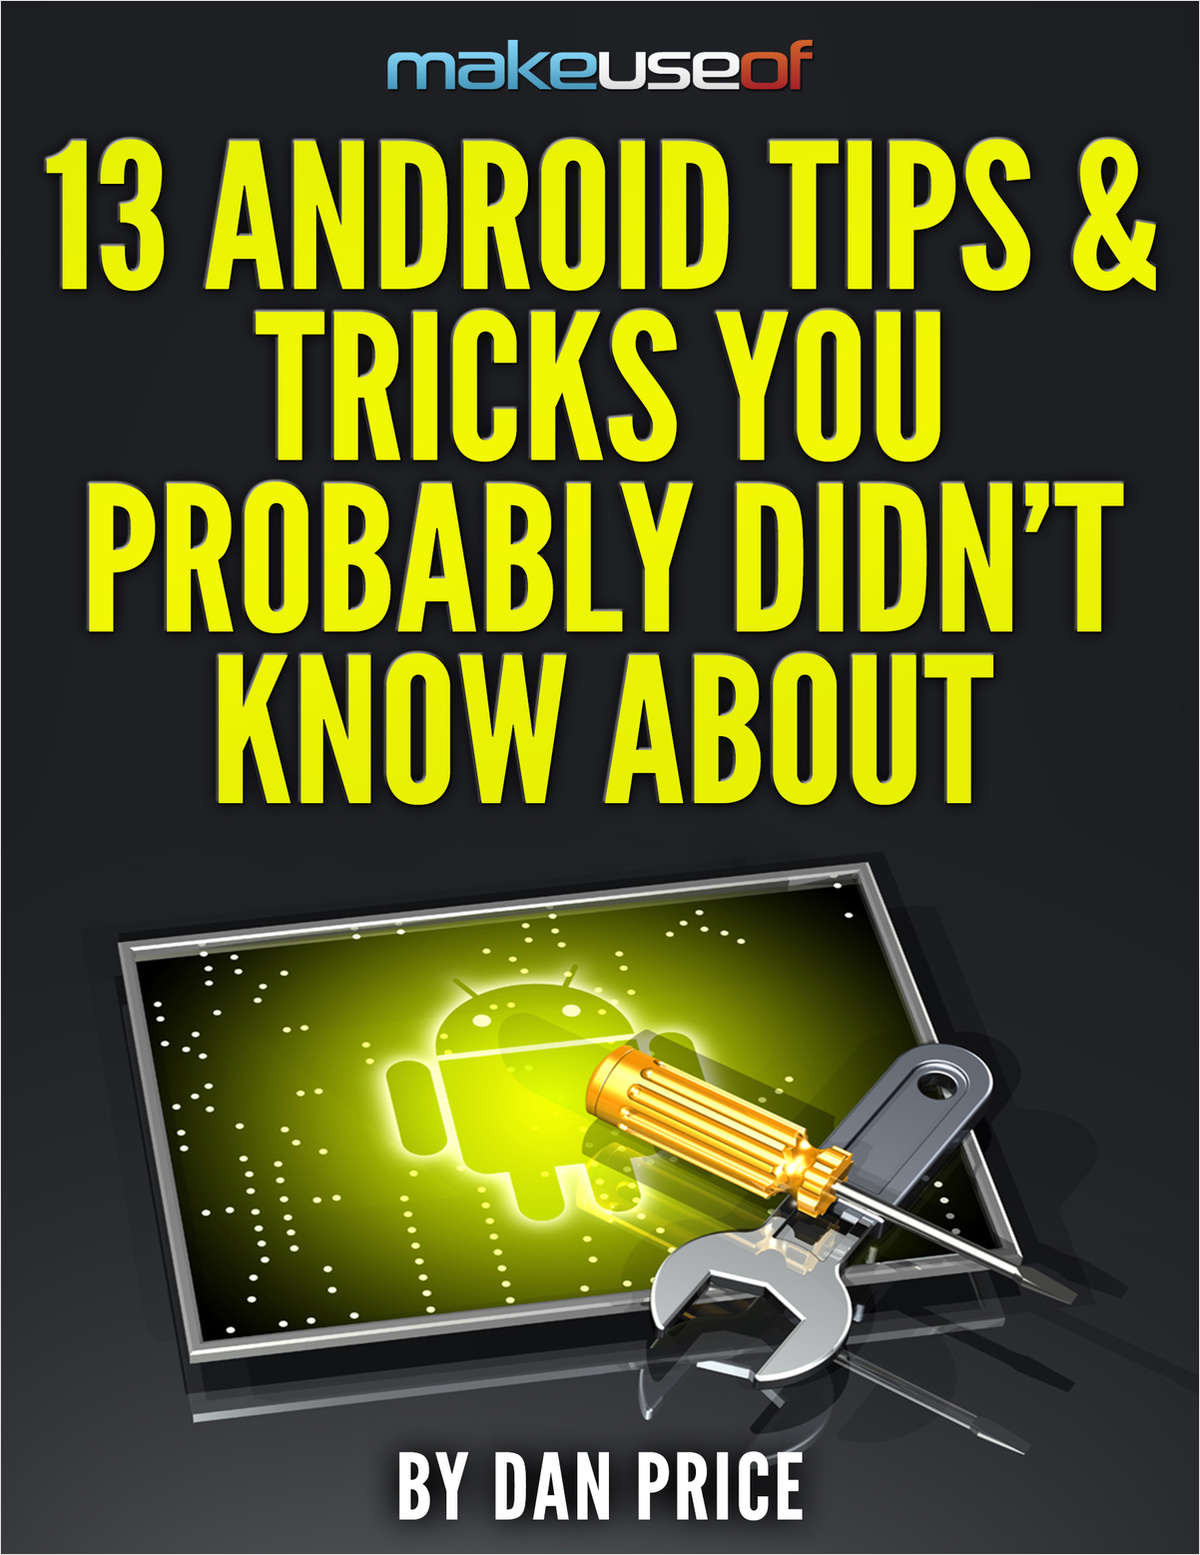 13 Android Tips & Tricks You Probably Didn't Know About